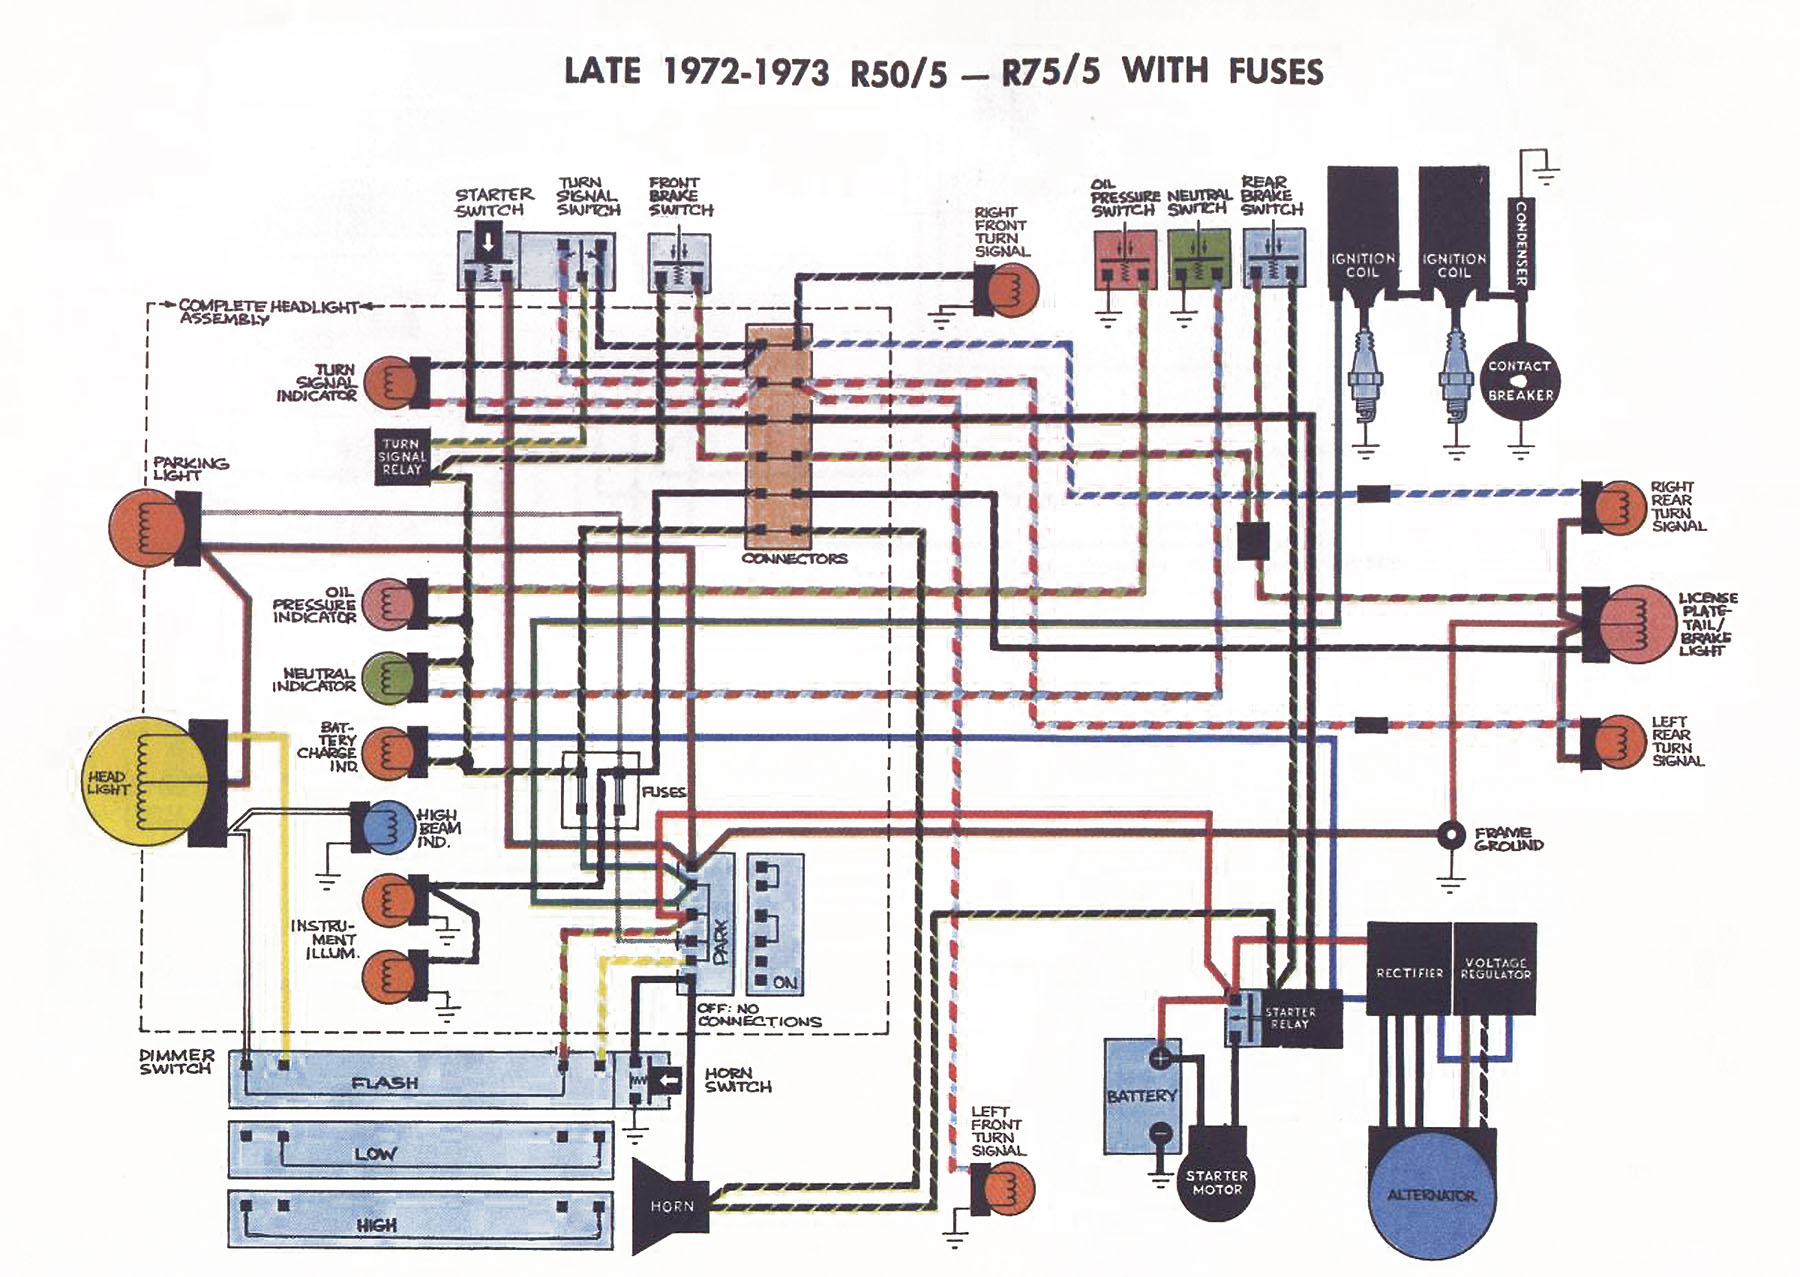 /5 (with fuses) schematic